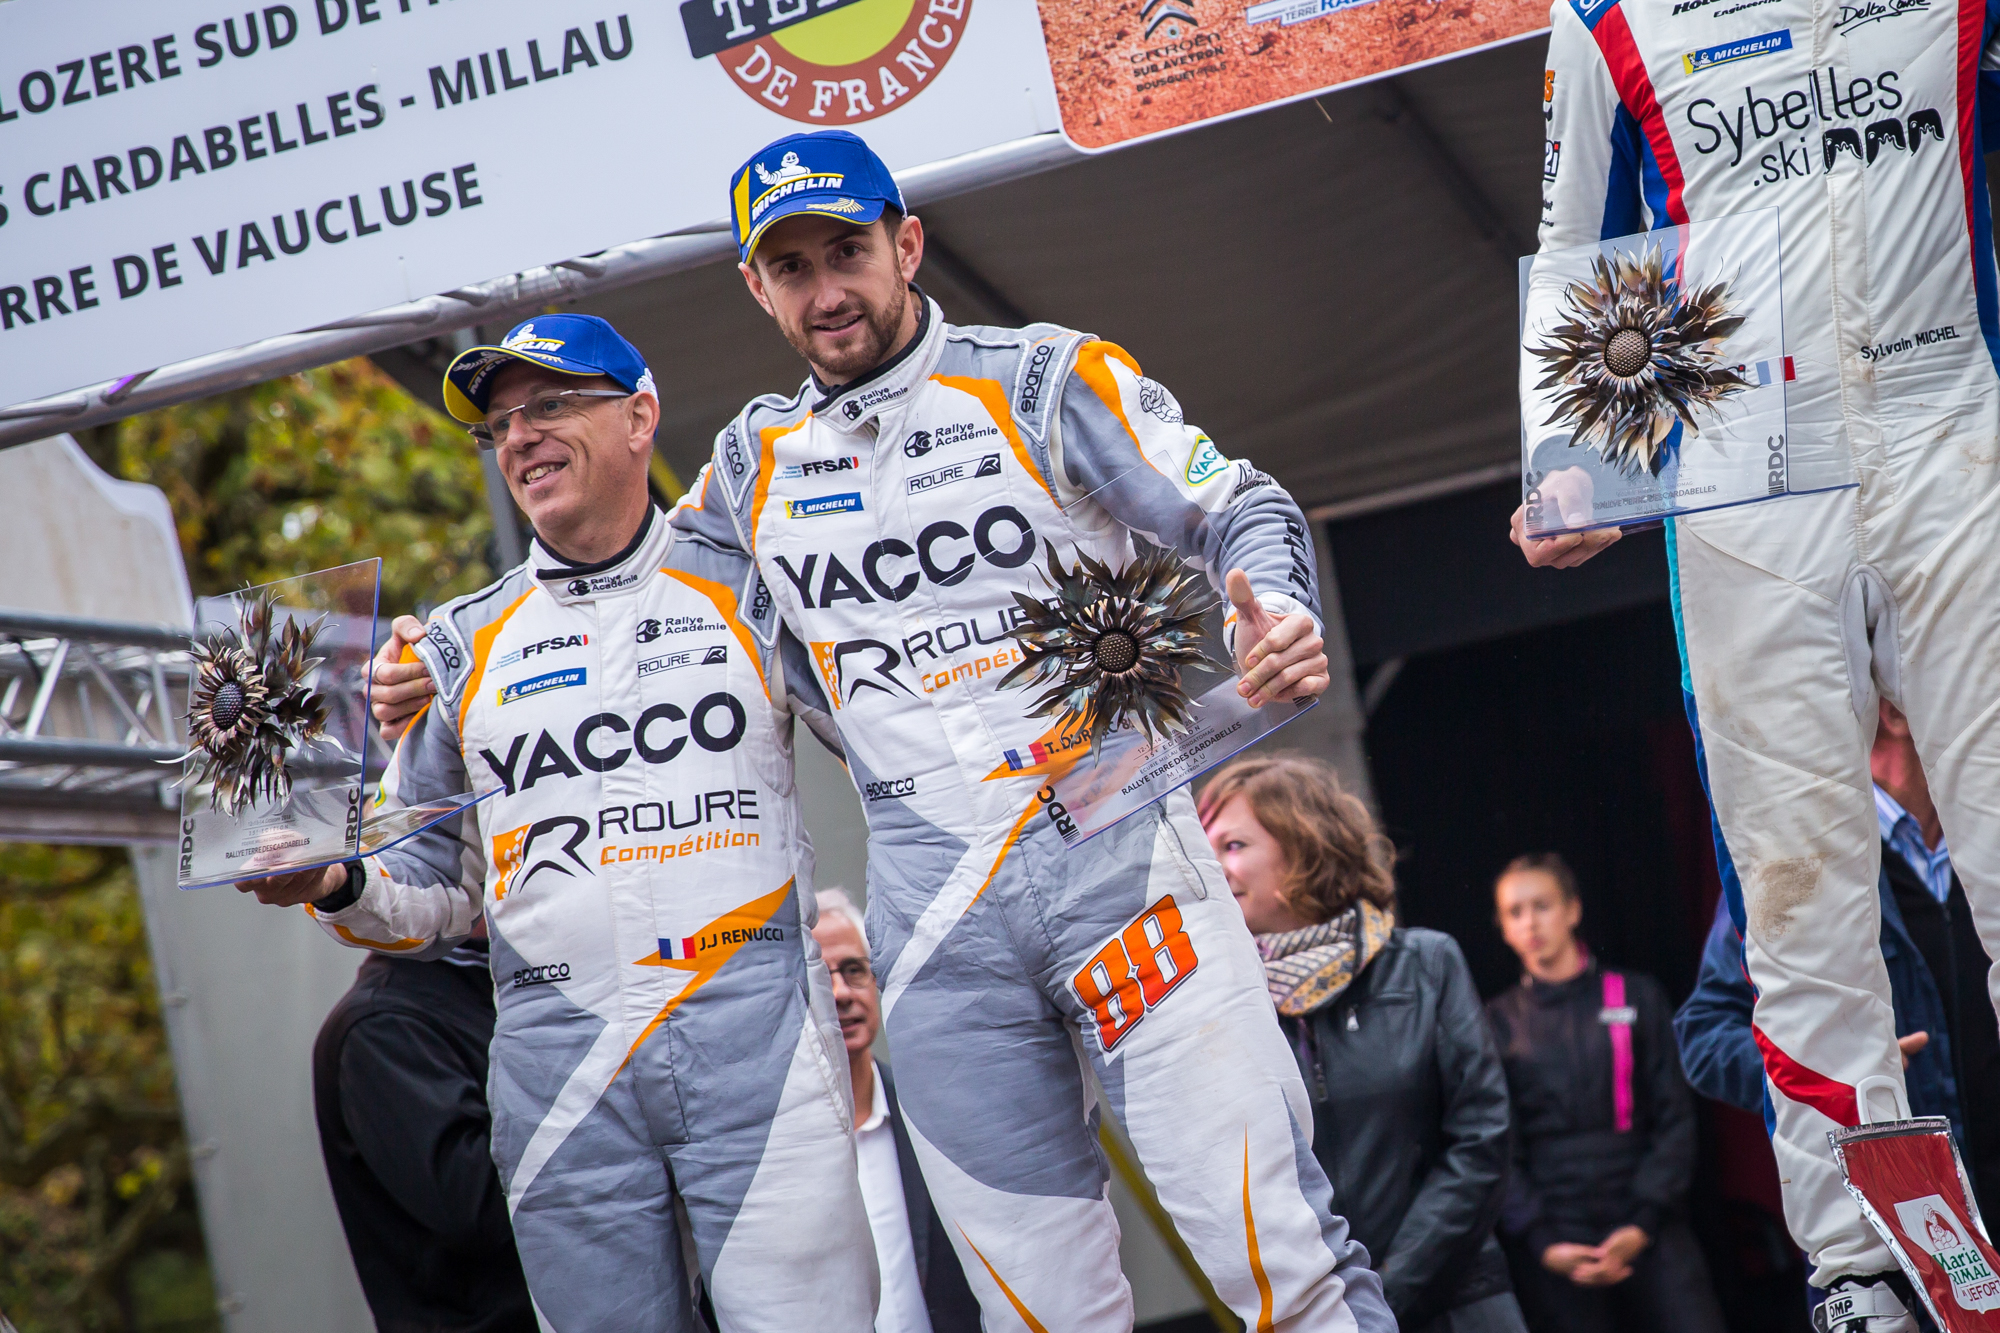 Terre des Cardabelles Rally 2018